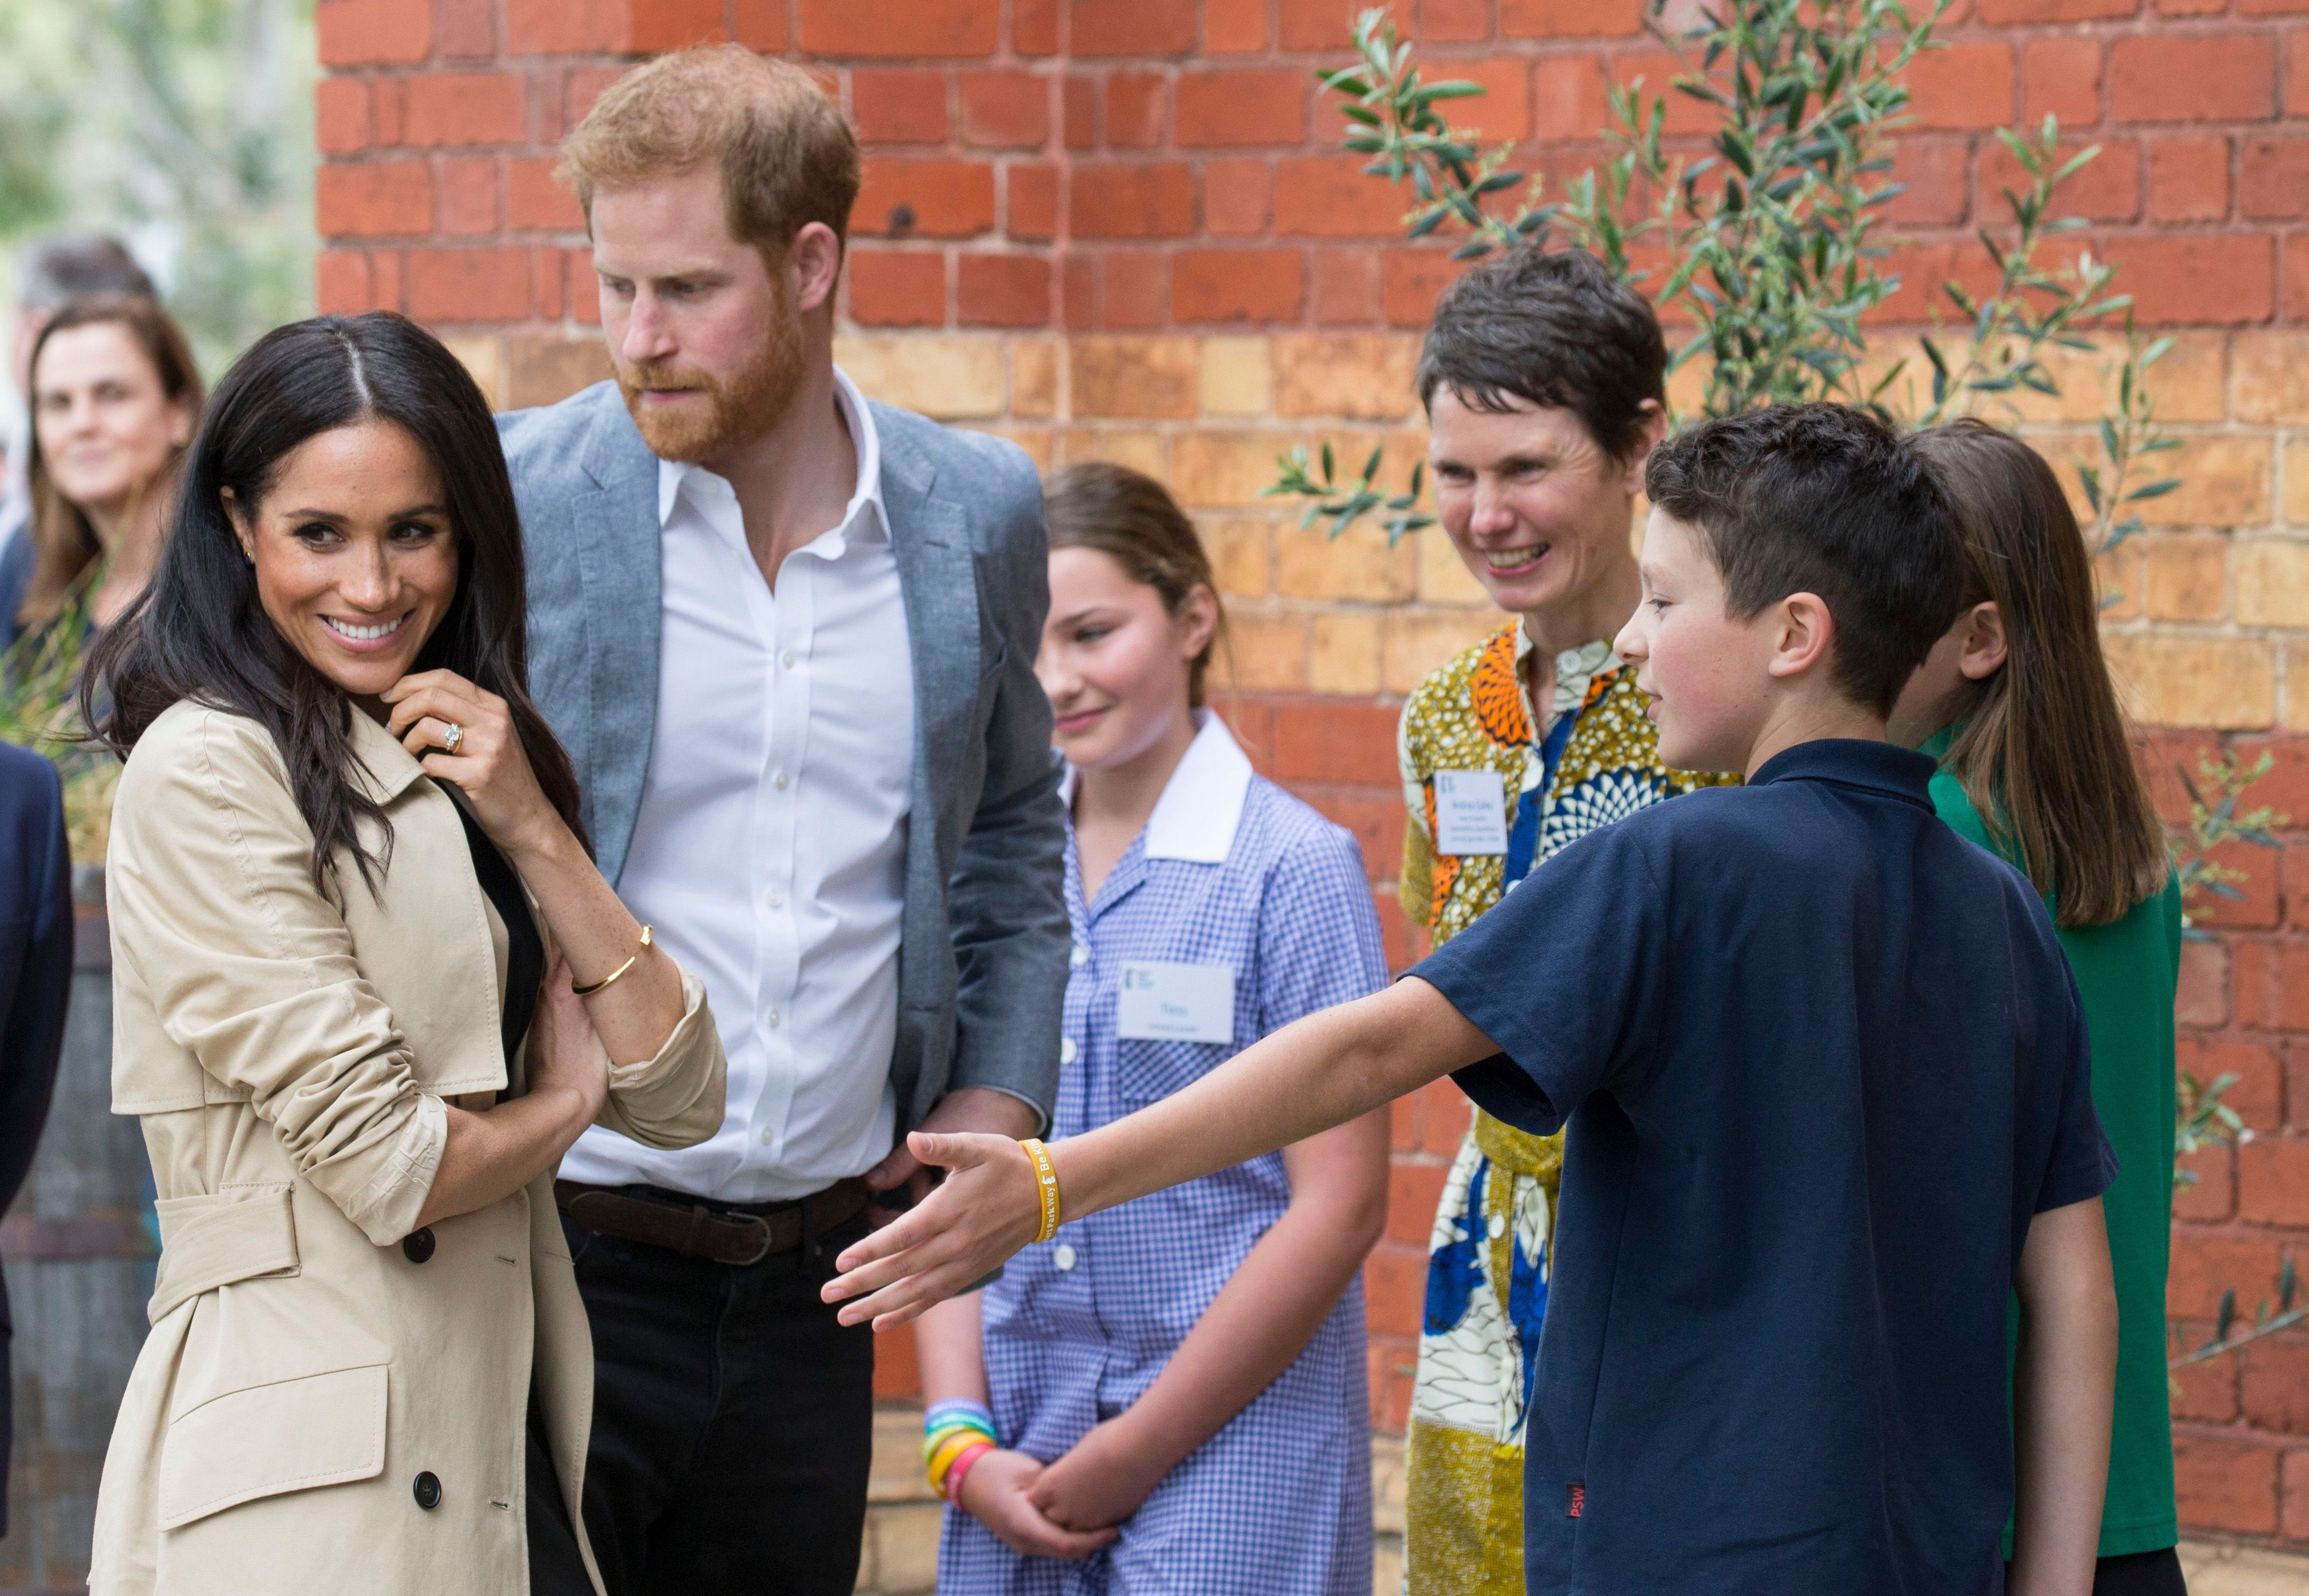 Meghan Duchess of Sussex and Prince Harry at Albert Park Primary School, MelbournePrince Harry and Meghan Duchess of Sussex tour of Australia - 18 Oct 2018